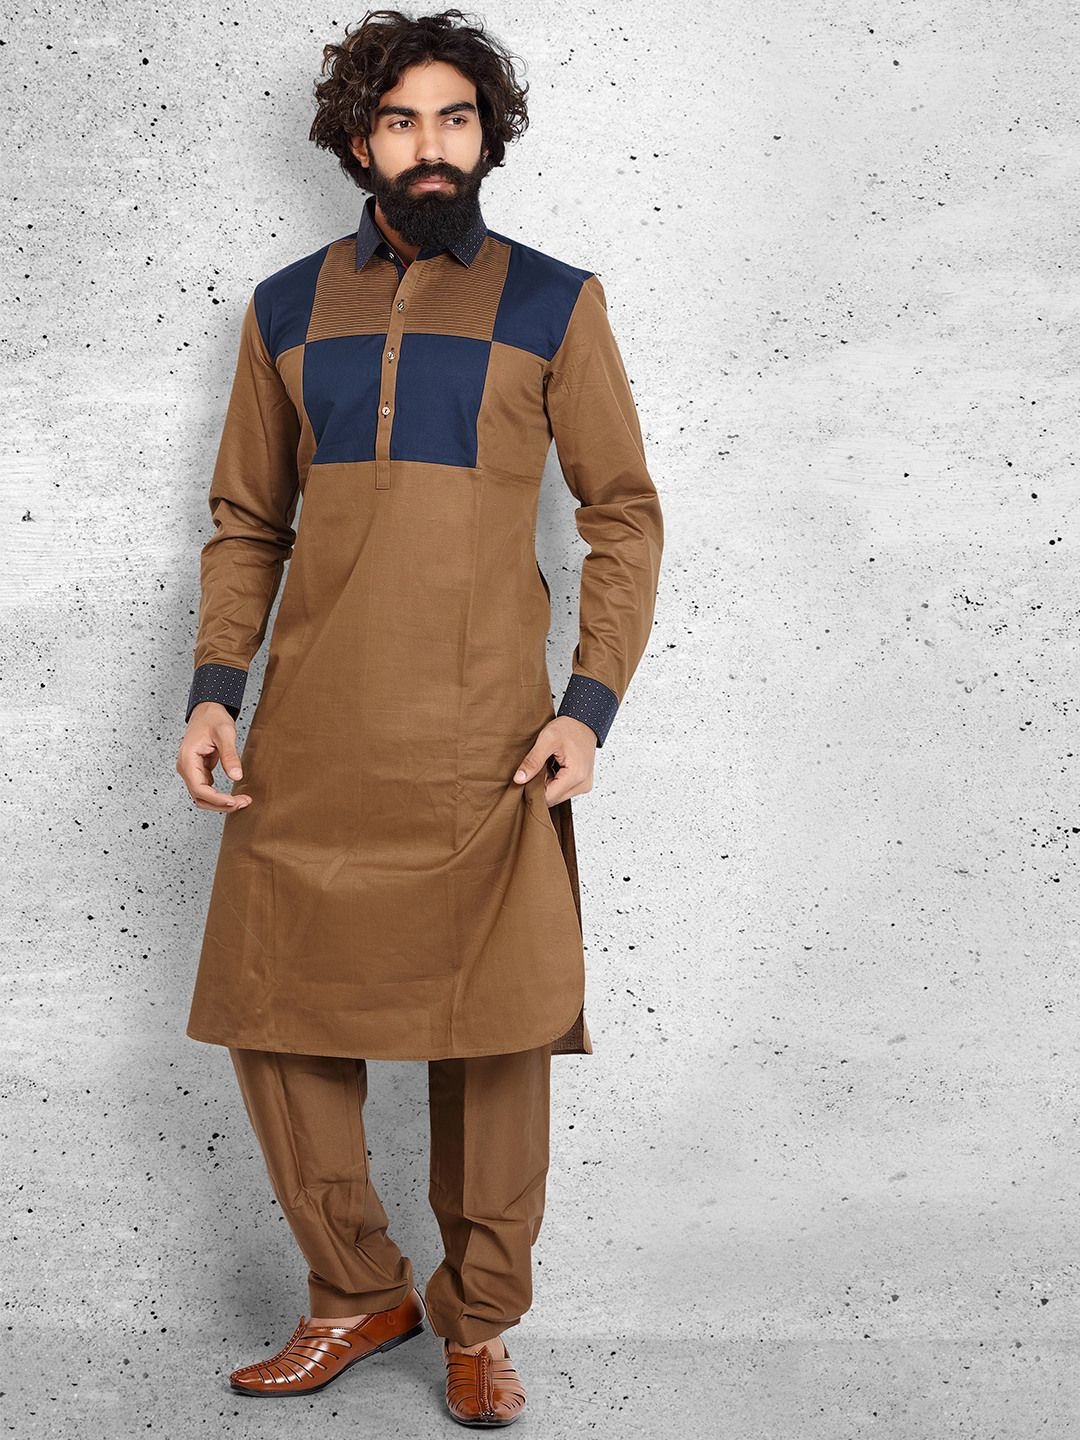 hair styles for black boys shop brown cotton solid pathani suit from g3fashion 4476